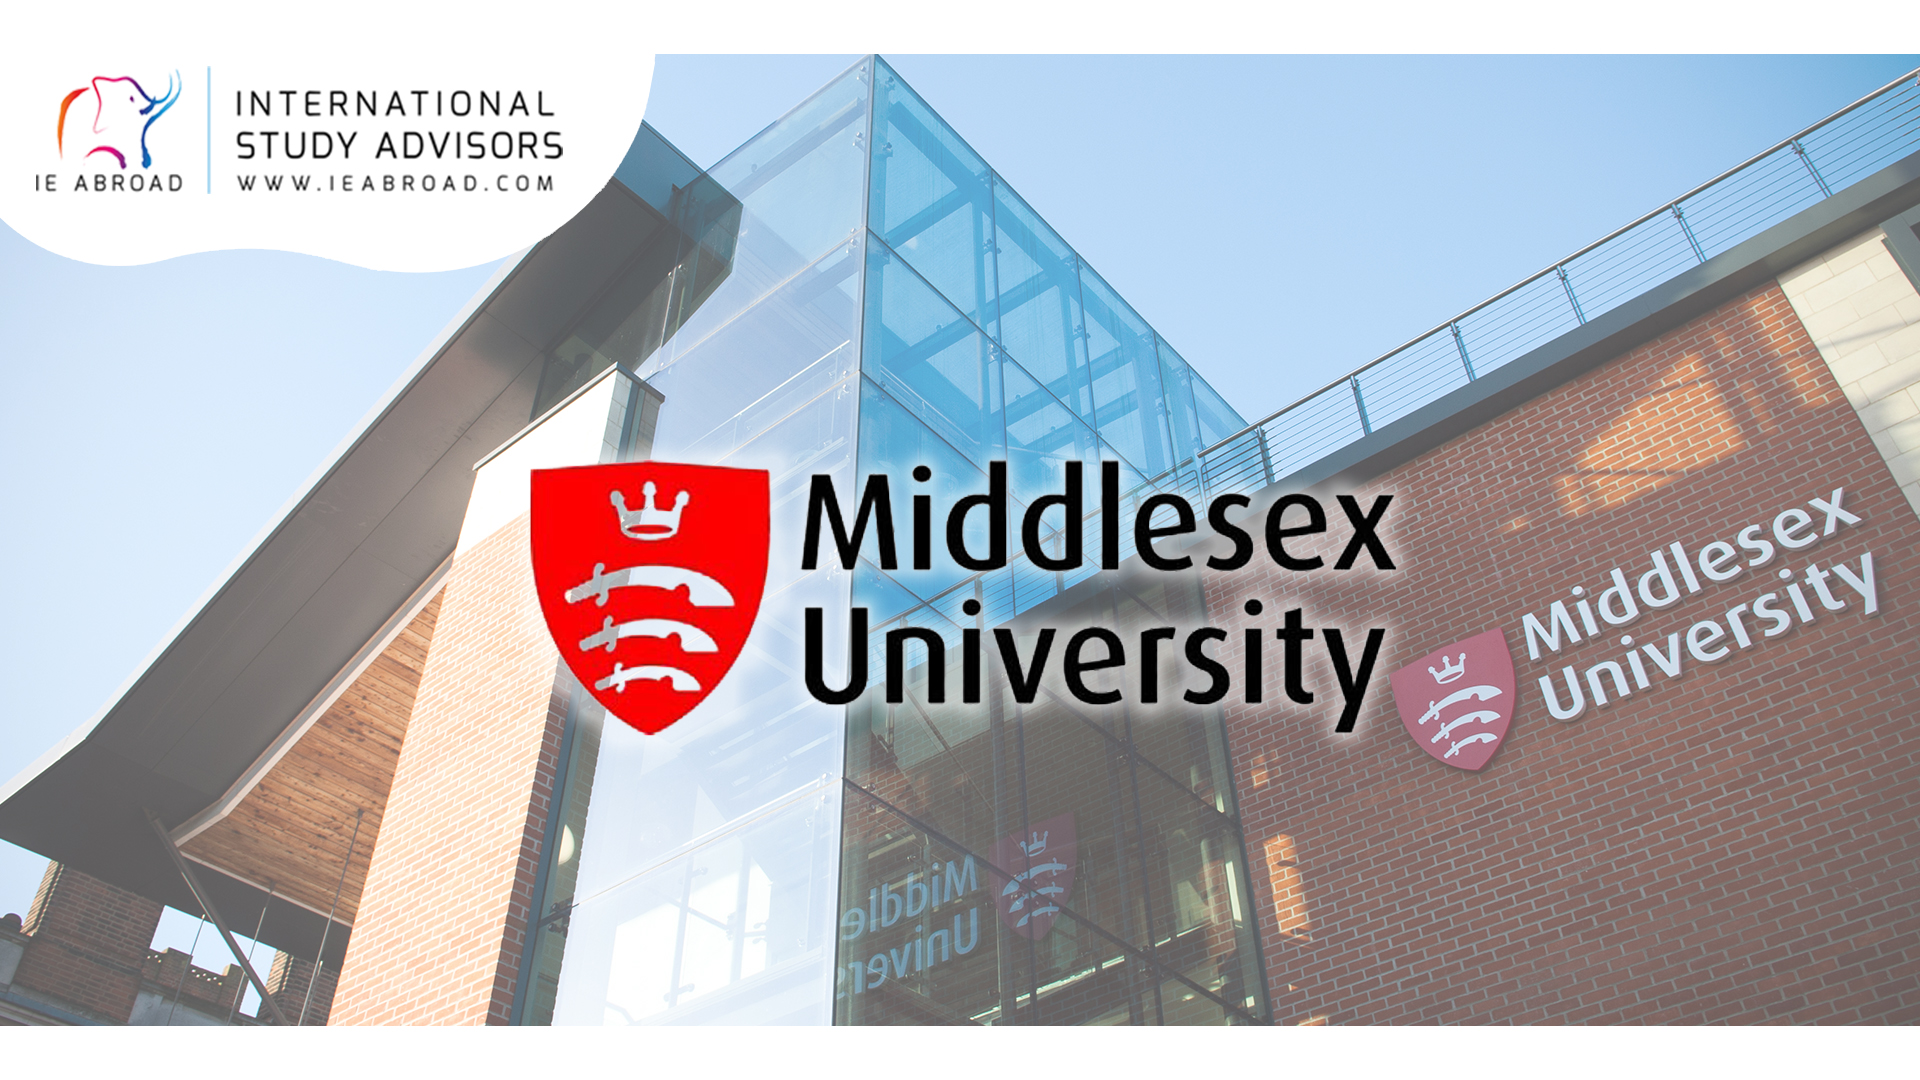 Fast & Curious: Middlesex University